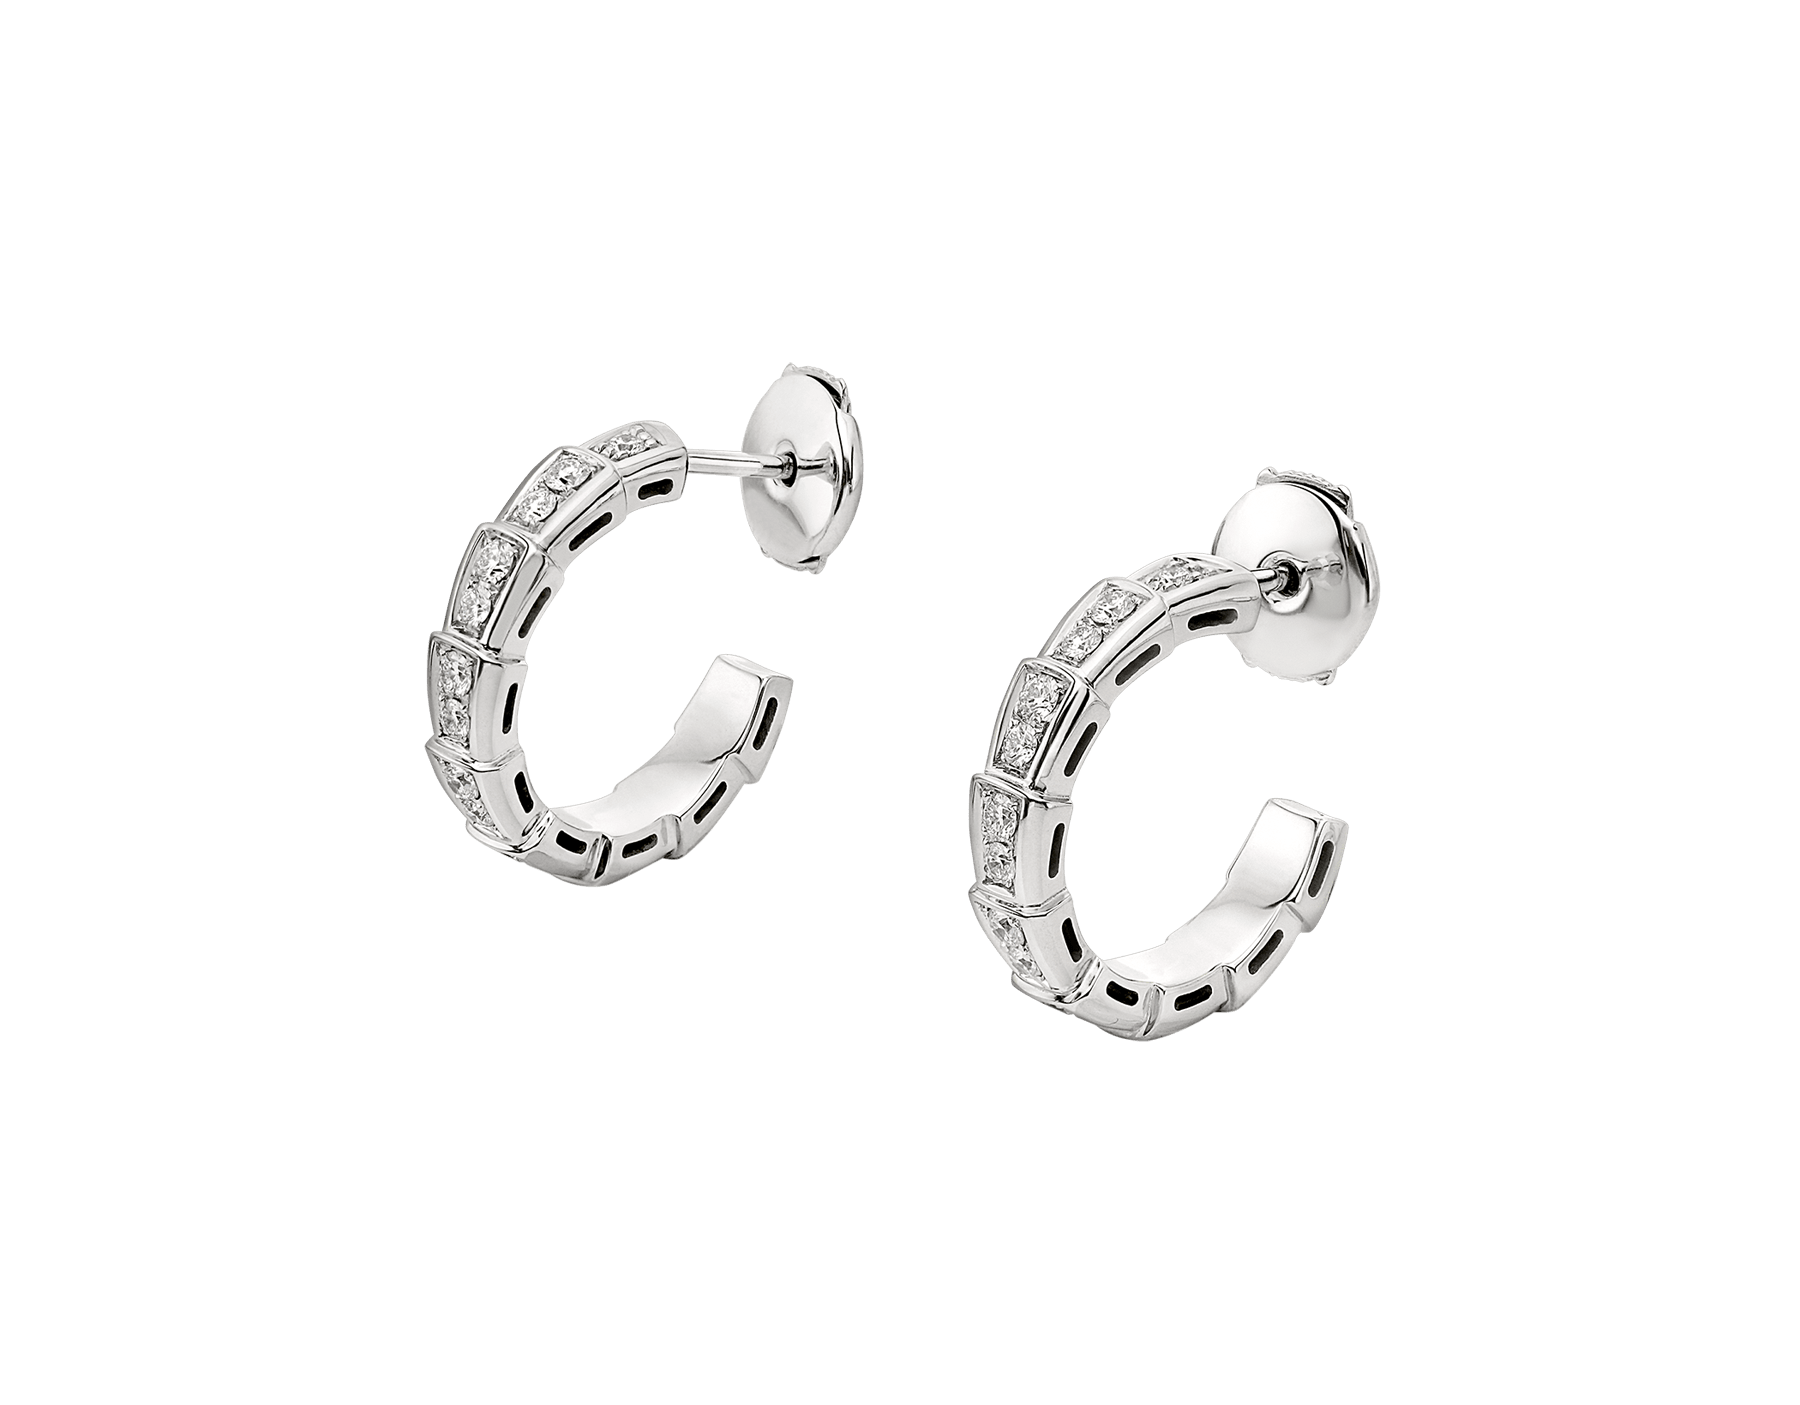 Serpenti Viper 18 kt white gold earrings set with pavé diamonds 356172 image 2